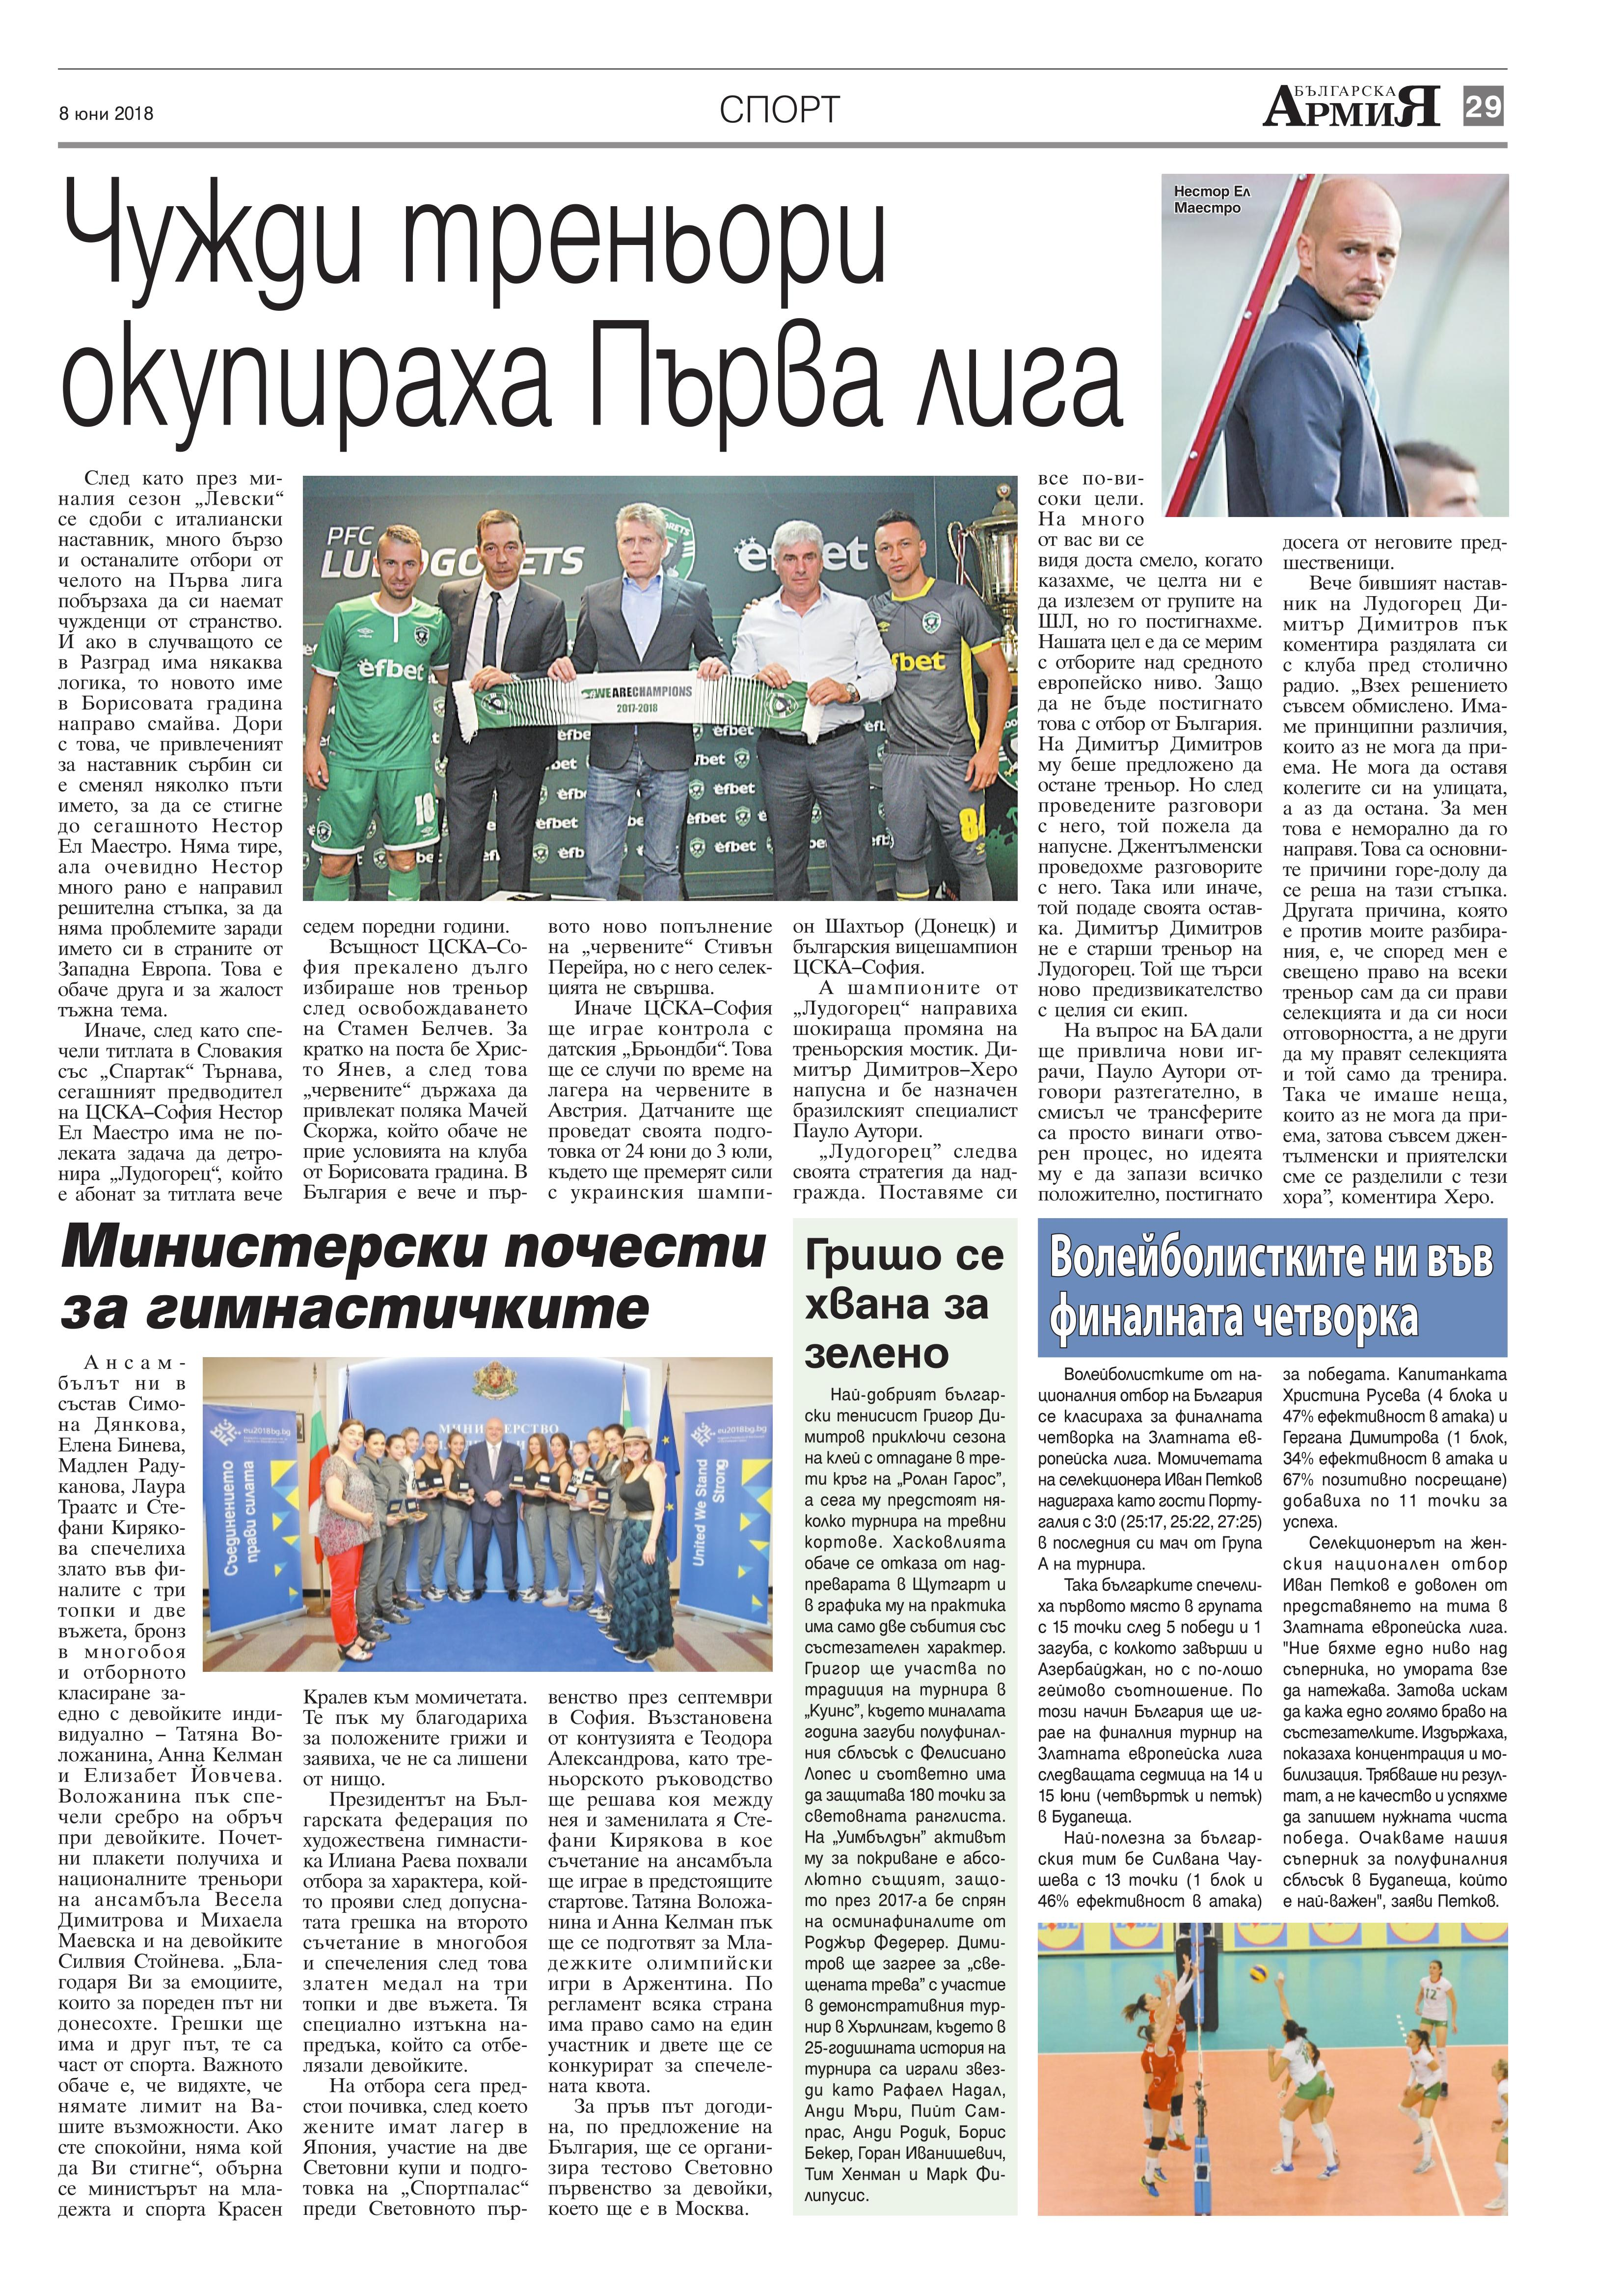 http://armymedia.bg/wp-content/uploads/2015/06/29.page1_-48.jpg